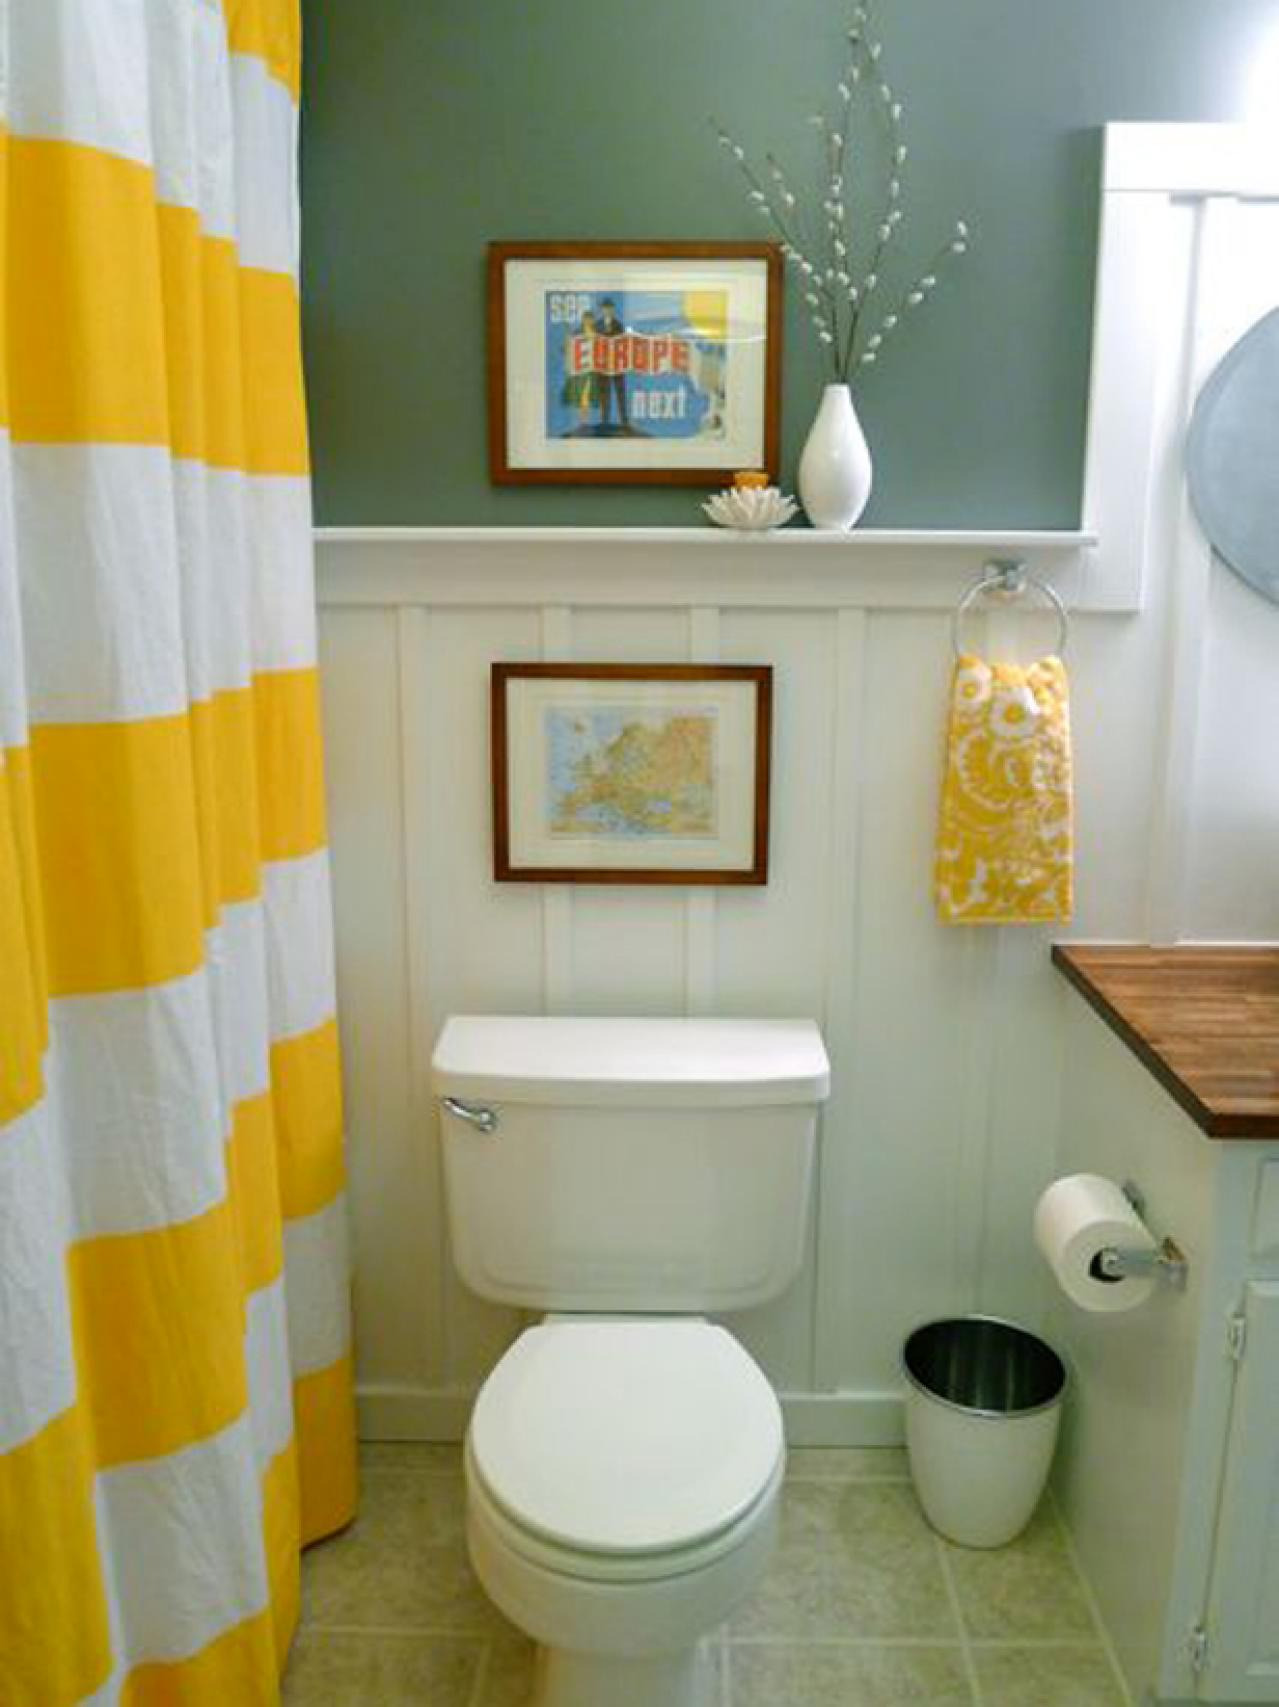 Bathroom Wall Decorating Ideas Small Hallway For Shelves